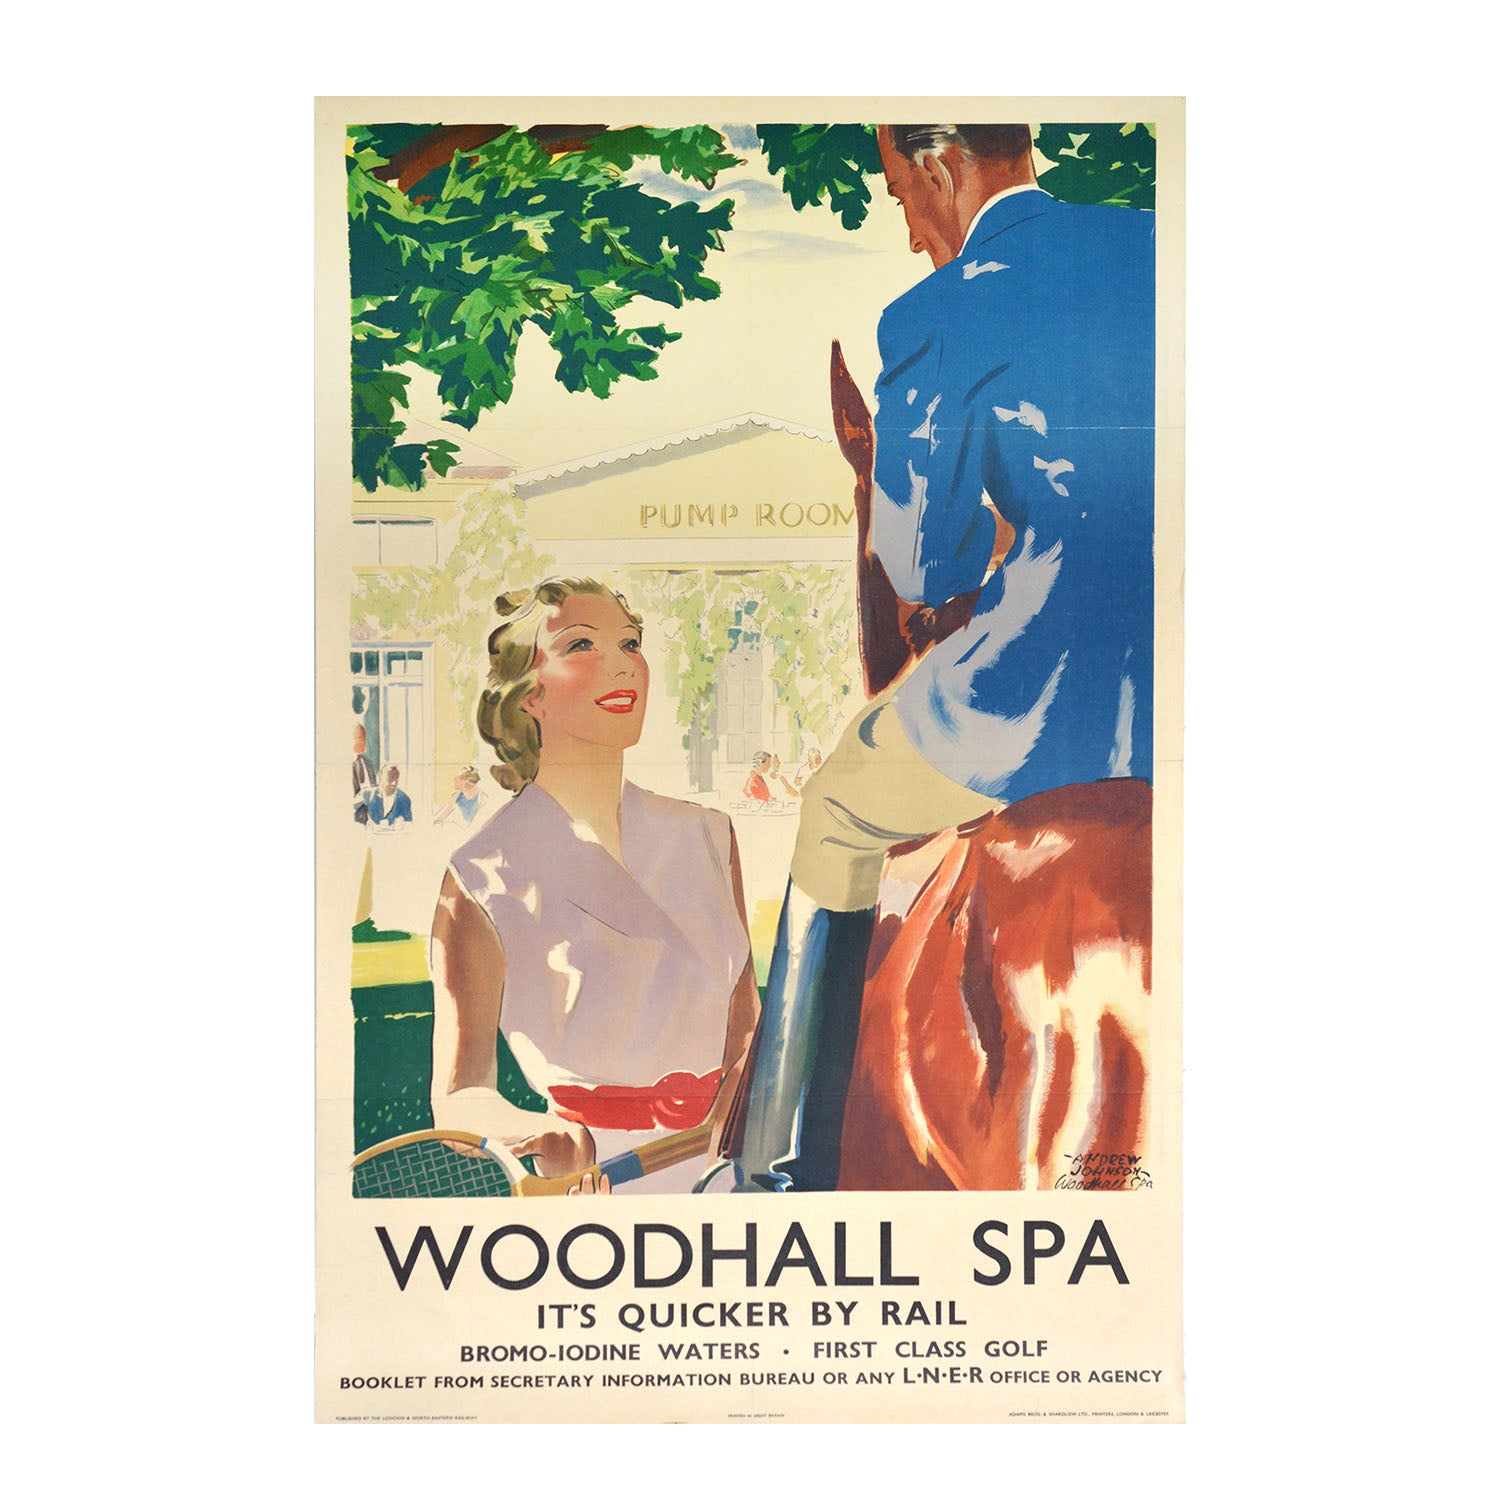 A lovely, and uncommon, original 1930s railway poster for Woodhall Spa, Lincolnshire.